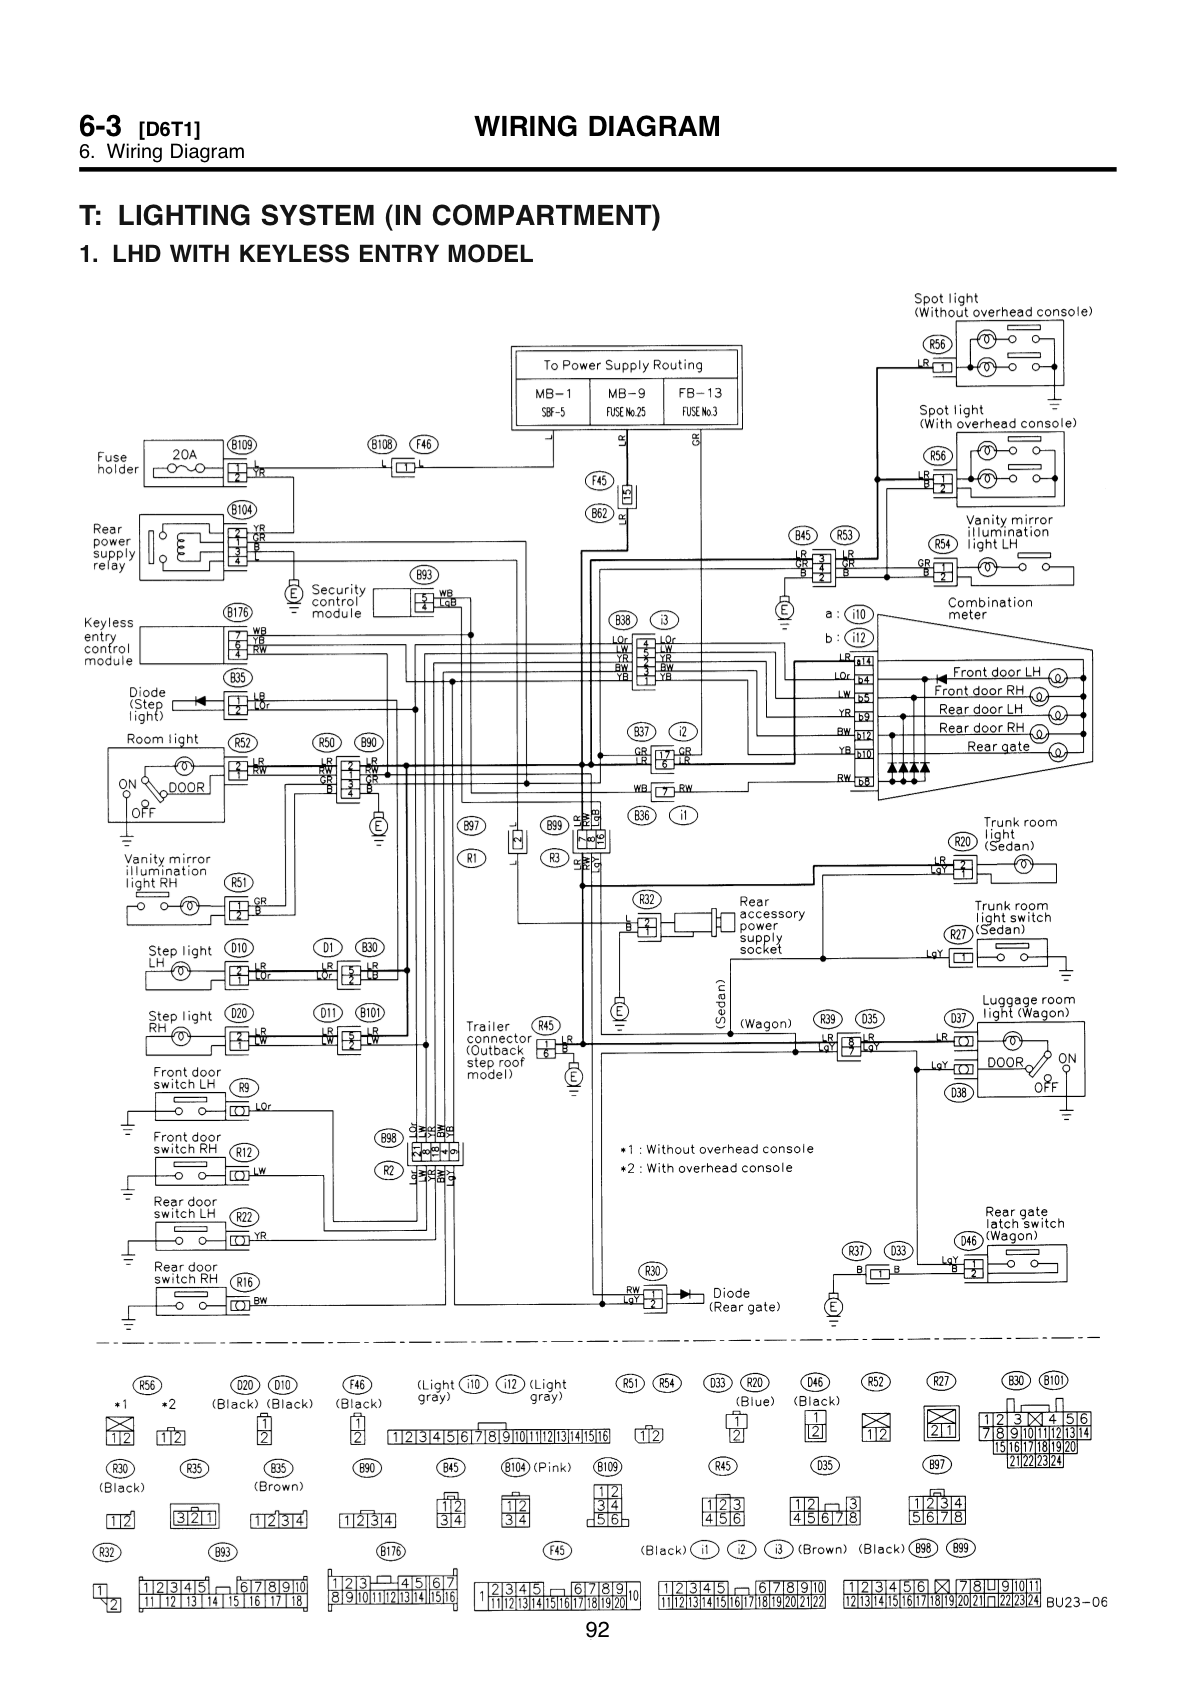 54e63 2002 Subaru Outback Air Conditioning Wiring Diagram Wiring Resources